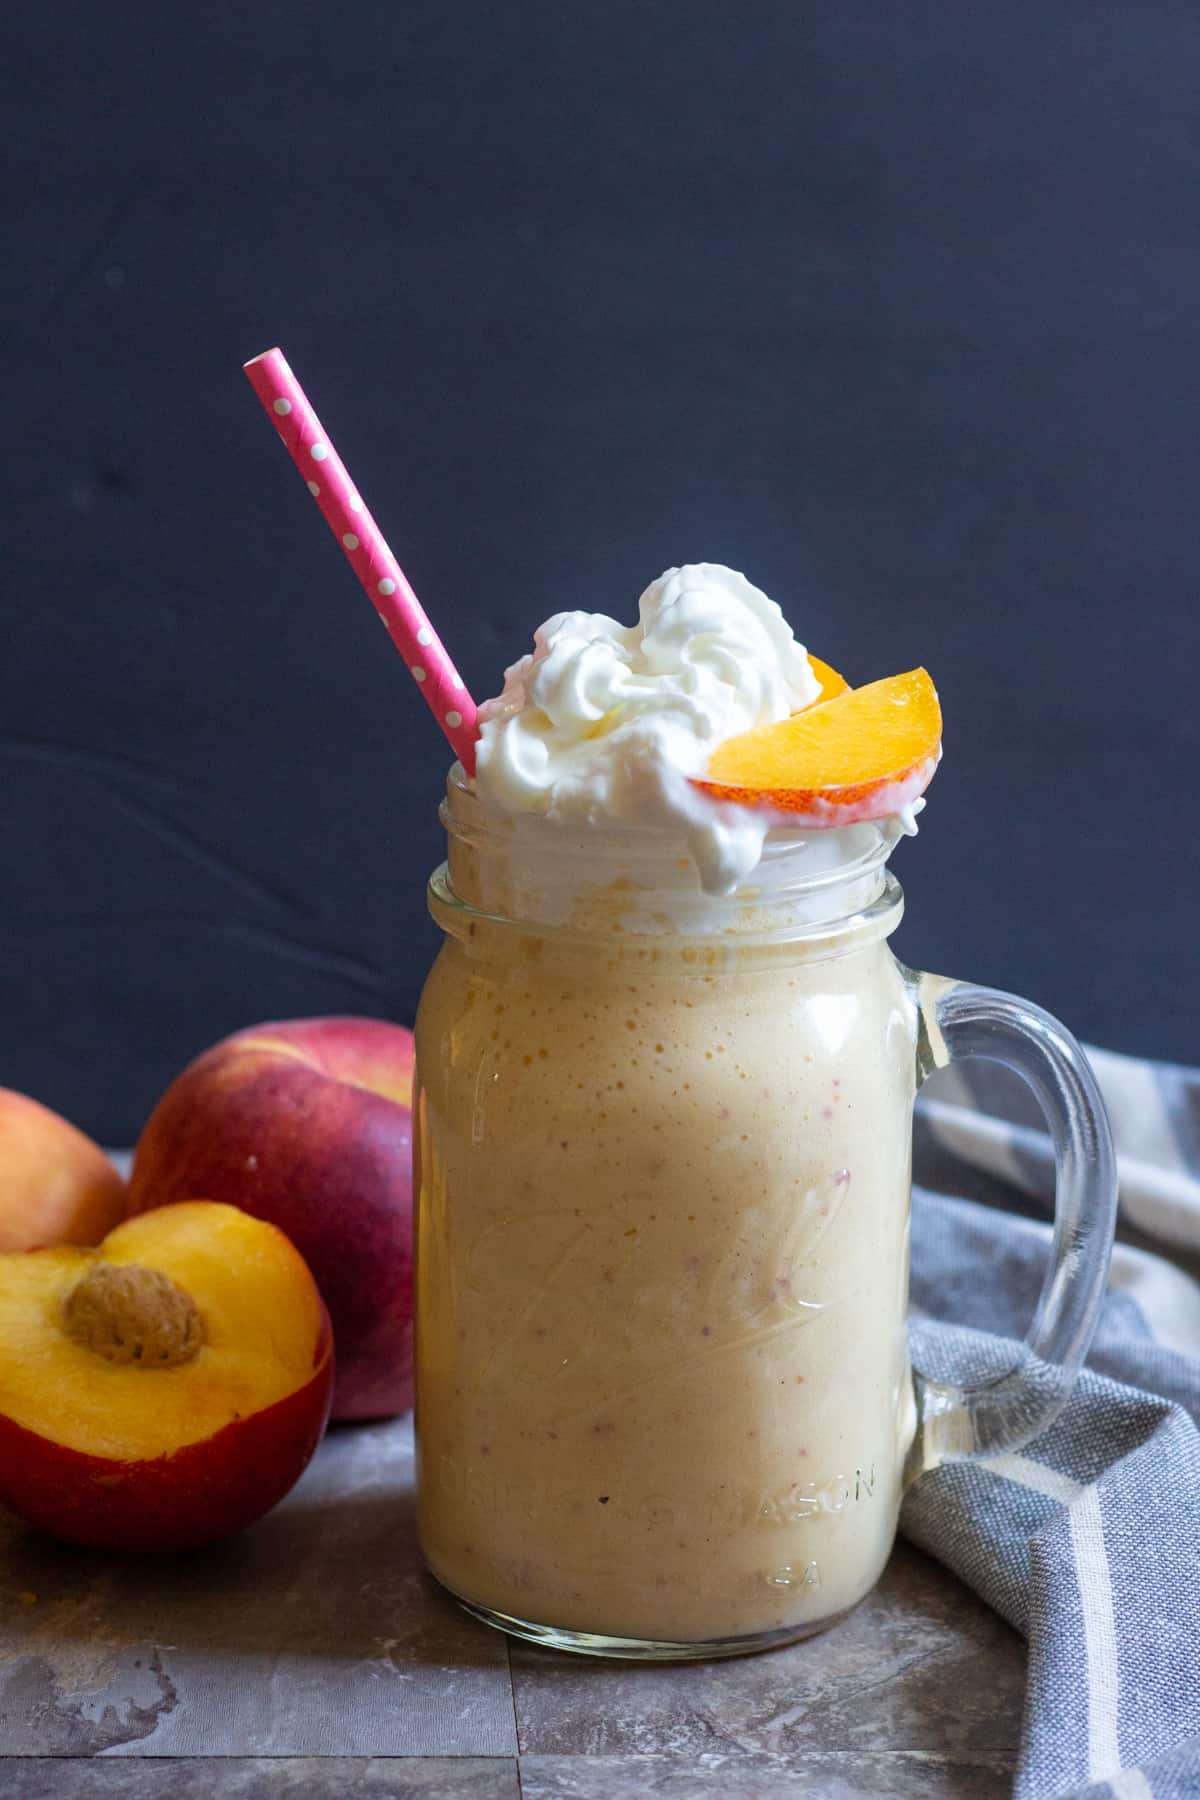 This easy milkshake recipe is perfect for kids and adults. Top with a slice of peach and drink with a straw.